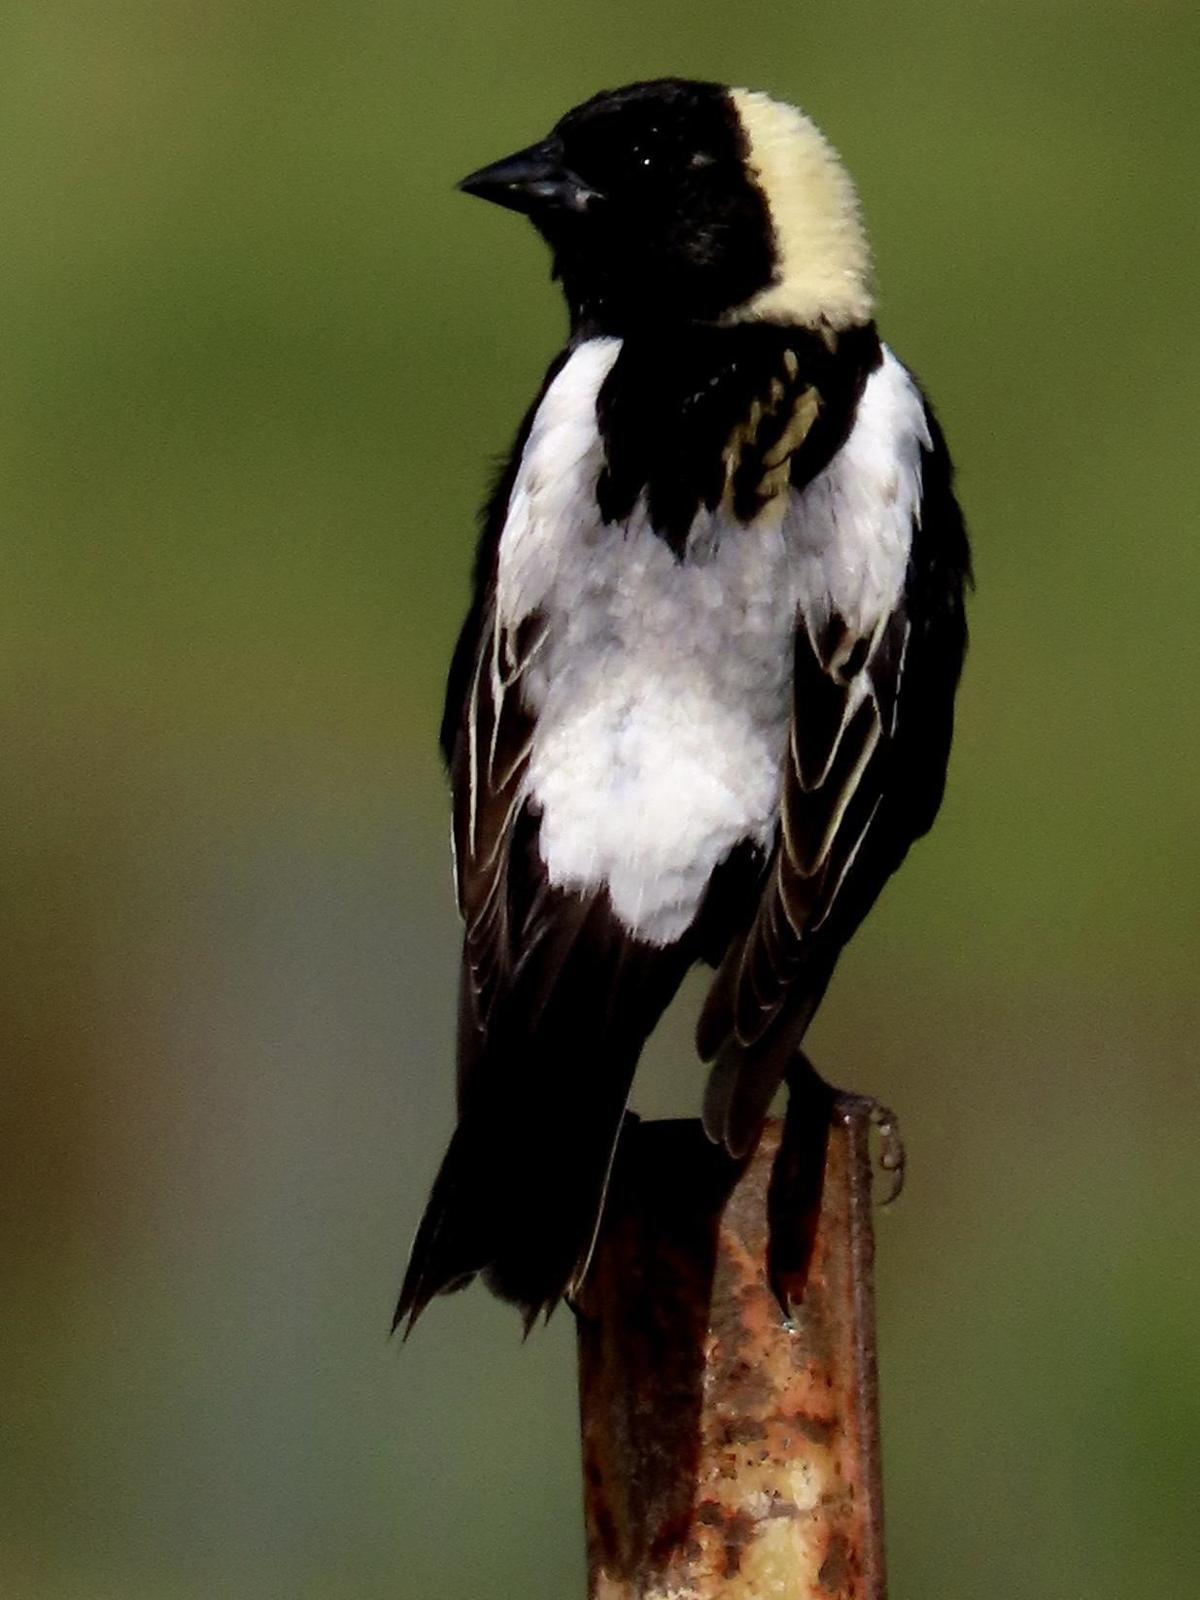 Robert Miller: Efforts to protect the bobolinks in our state